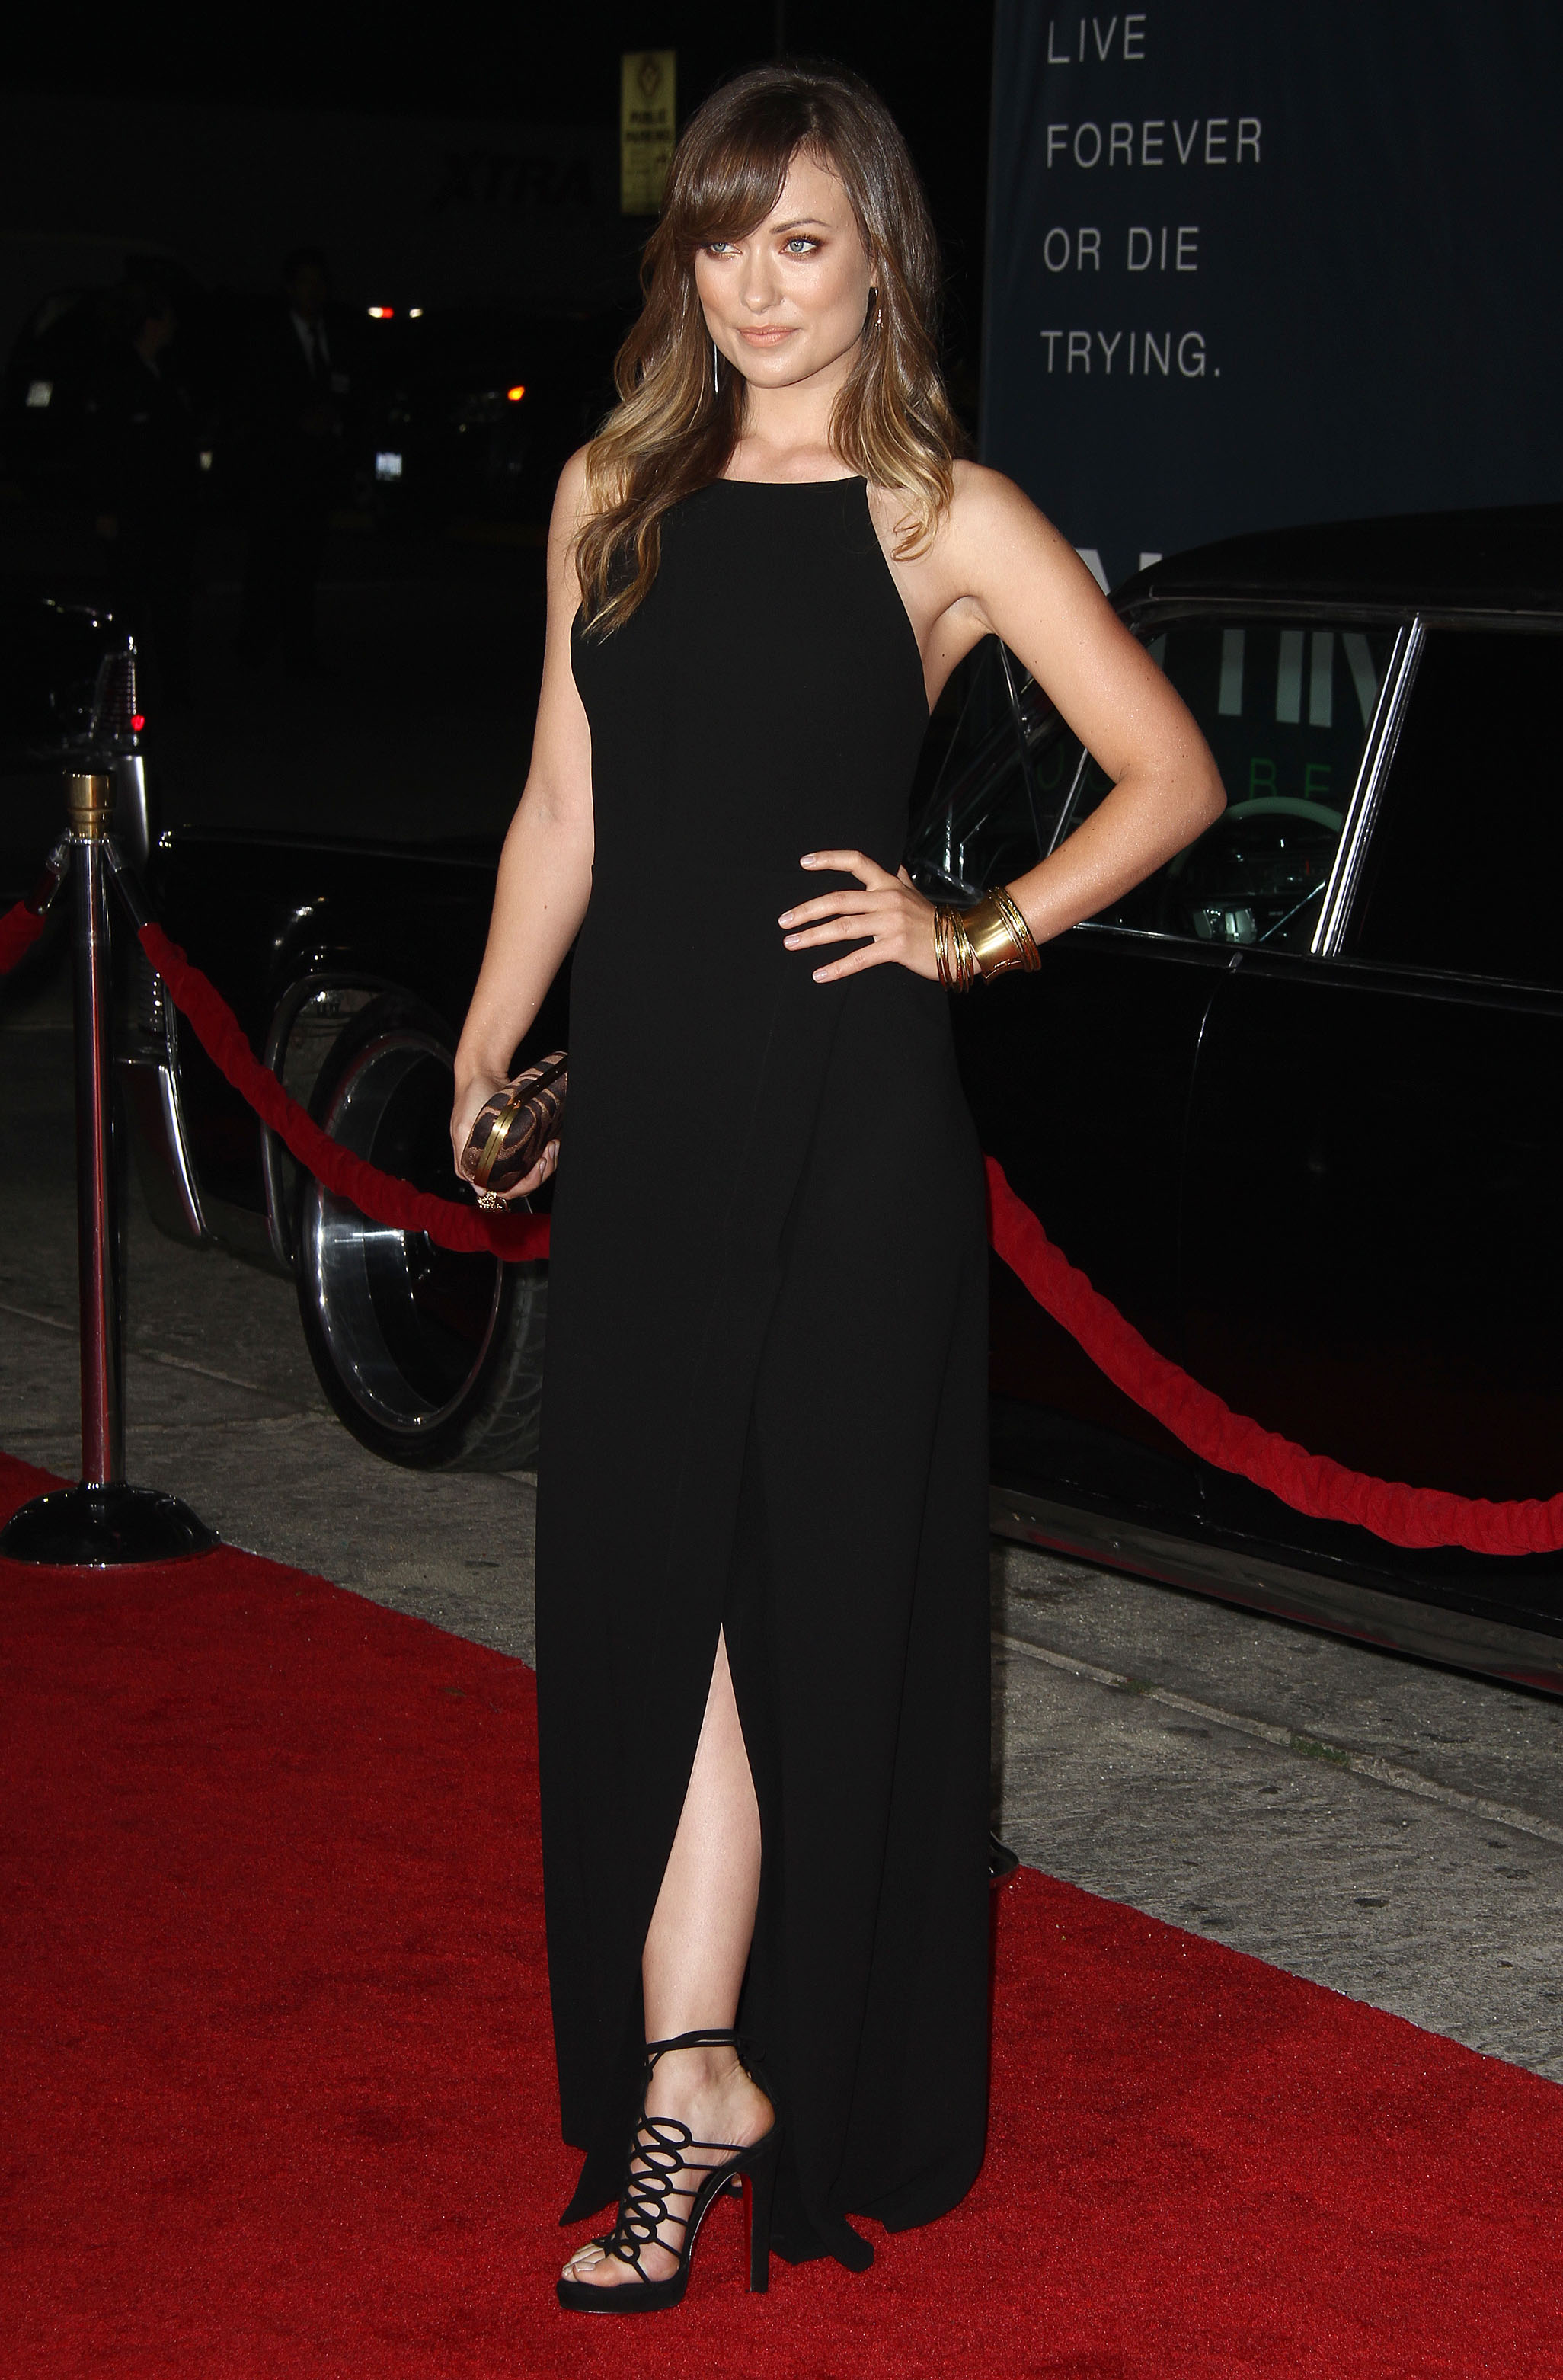 Olivia wilde black long dress candids at in time premiere 03 olivia wilde black long dress candids at in time premiere 03 full size voltagebd Image collections